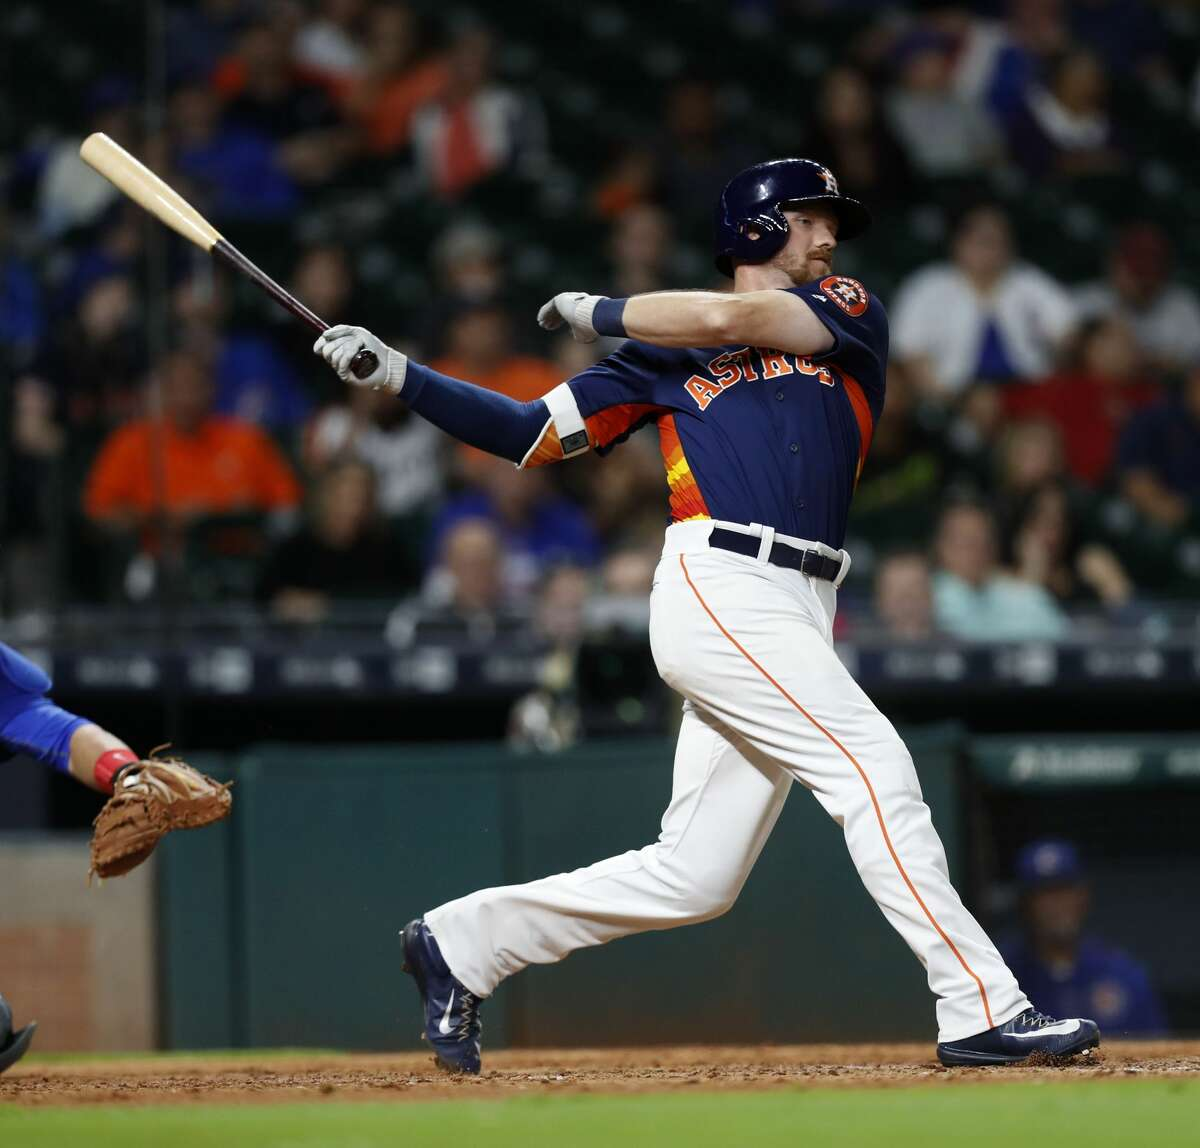 Houston Astros Derek Fisher (77) swings at a ball during his at bat in the eighth inning of an MLB exhibition game at Minute Maid Park, Thursday, March 30, 2017, in Houston. ( Karen Warren / Houston Chronicle )